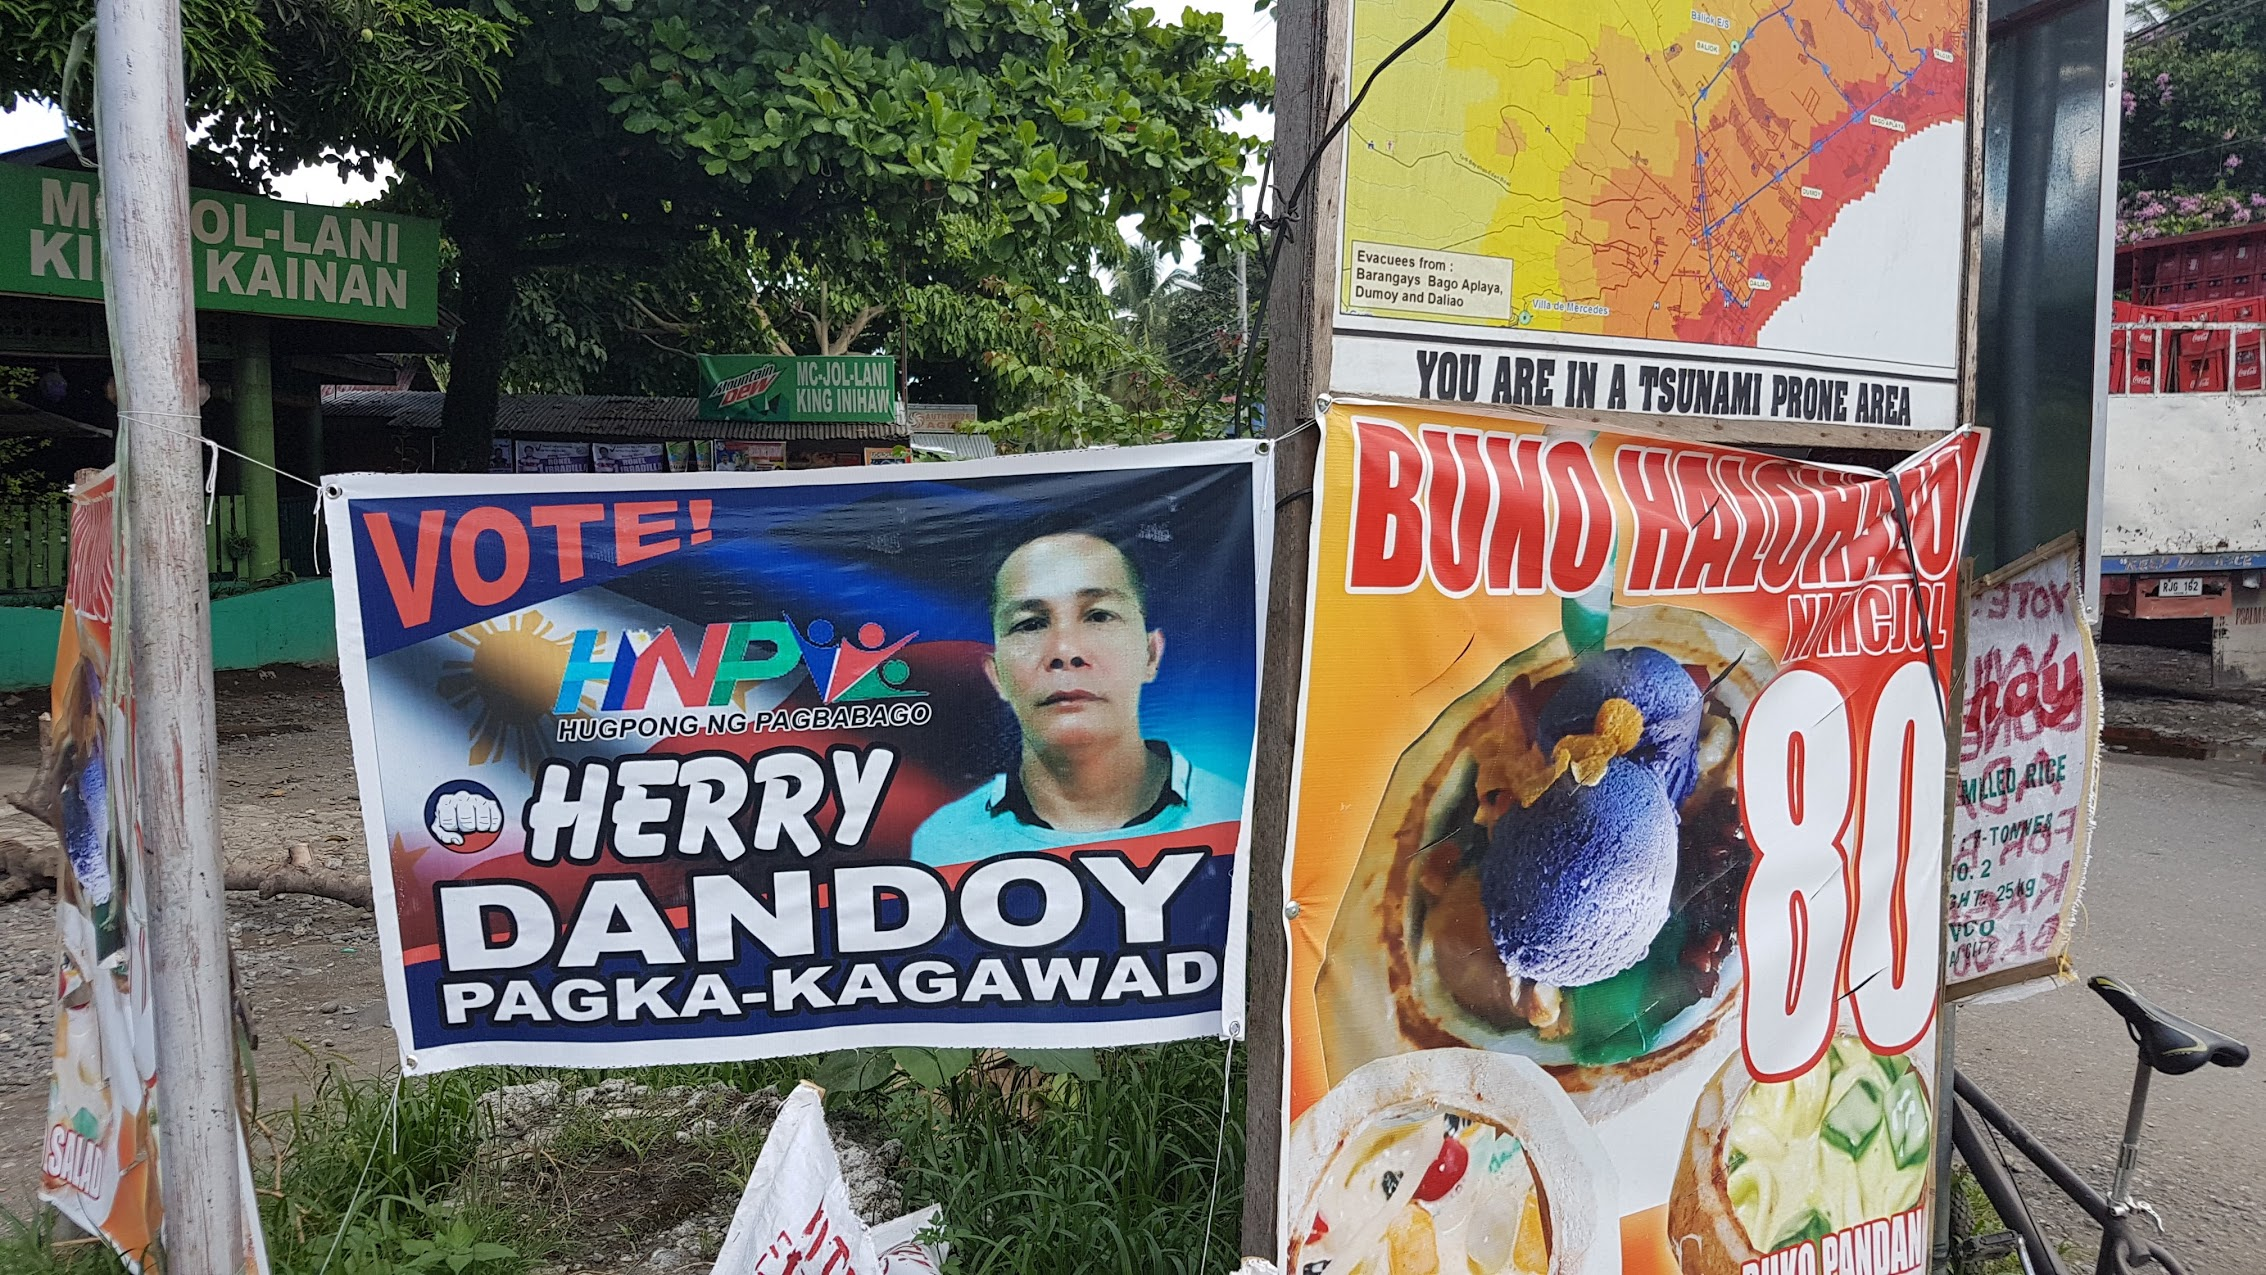 TEAM HNP? Posters of Bago Aplaya candidate Herry Dandoy shows the logo of Hugpong ng Pagbabago. Photo by Mick Basa/Rappler